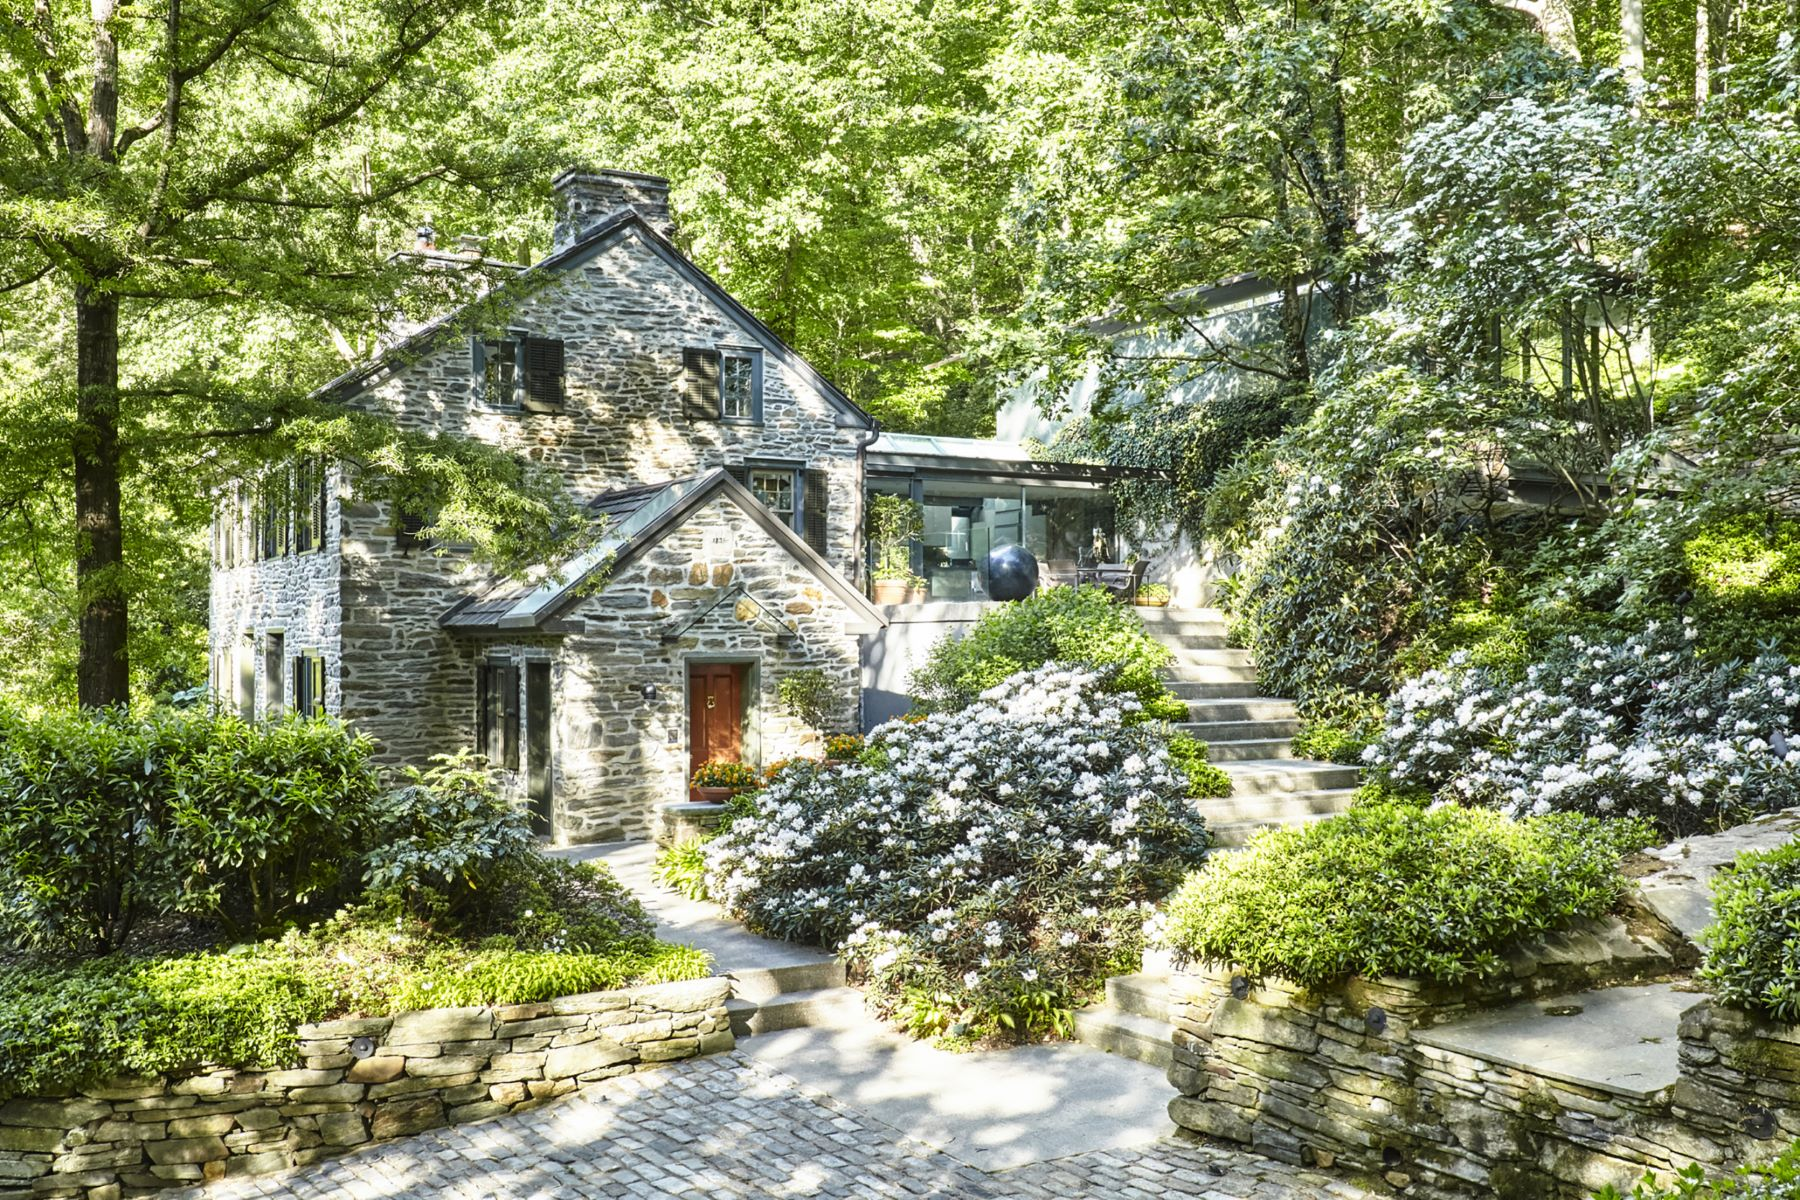 Single Family Home for Sale at 1485 Mill Creek Rd Gladwyne, Pennsylvania 19035 United States